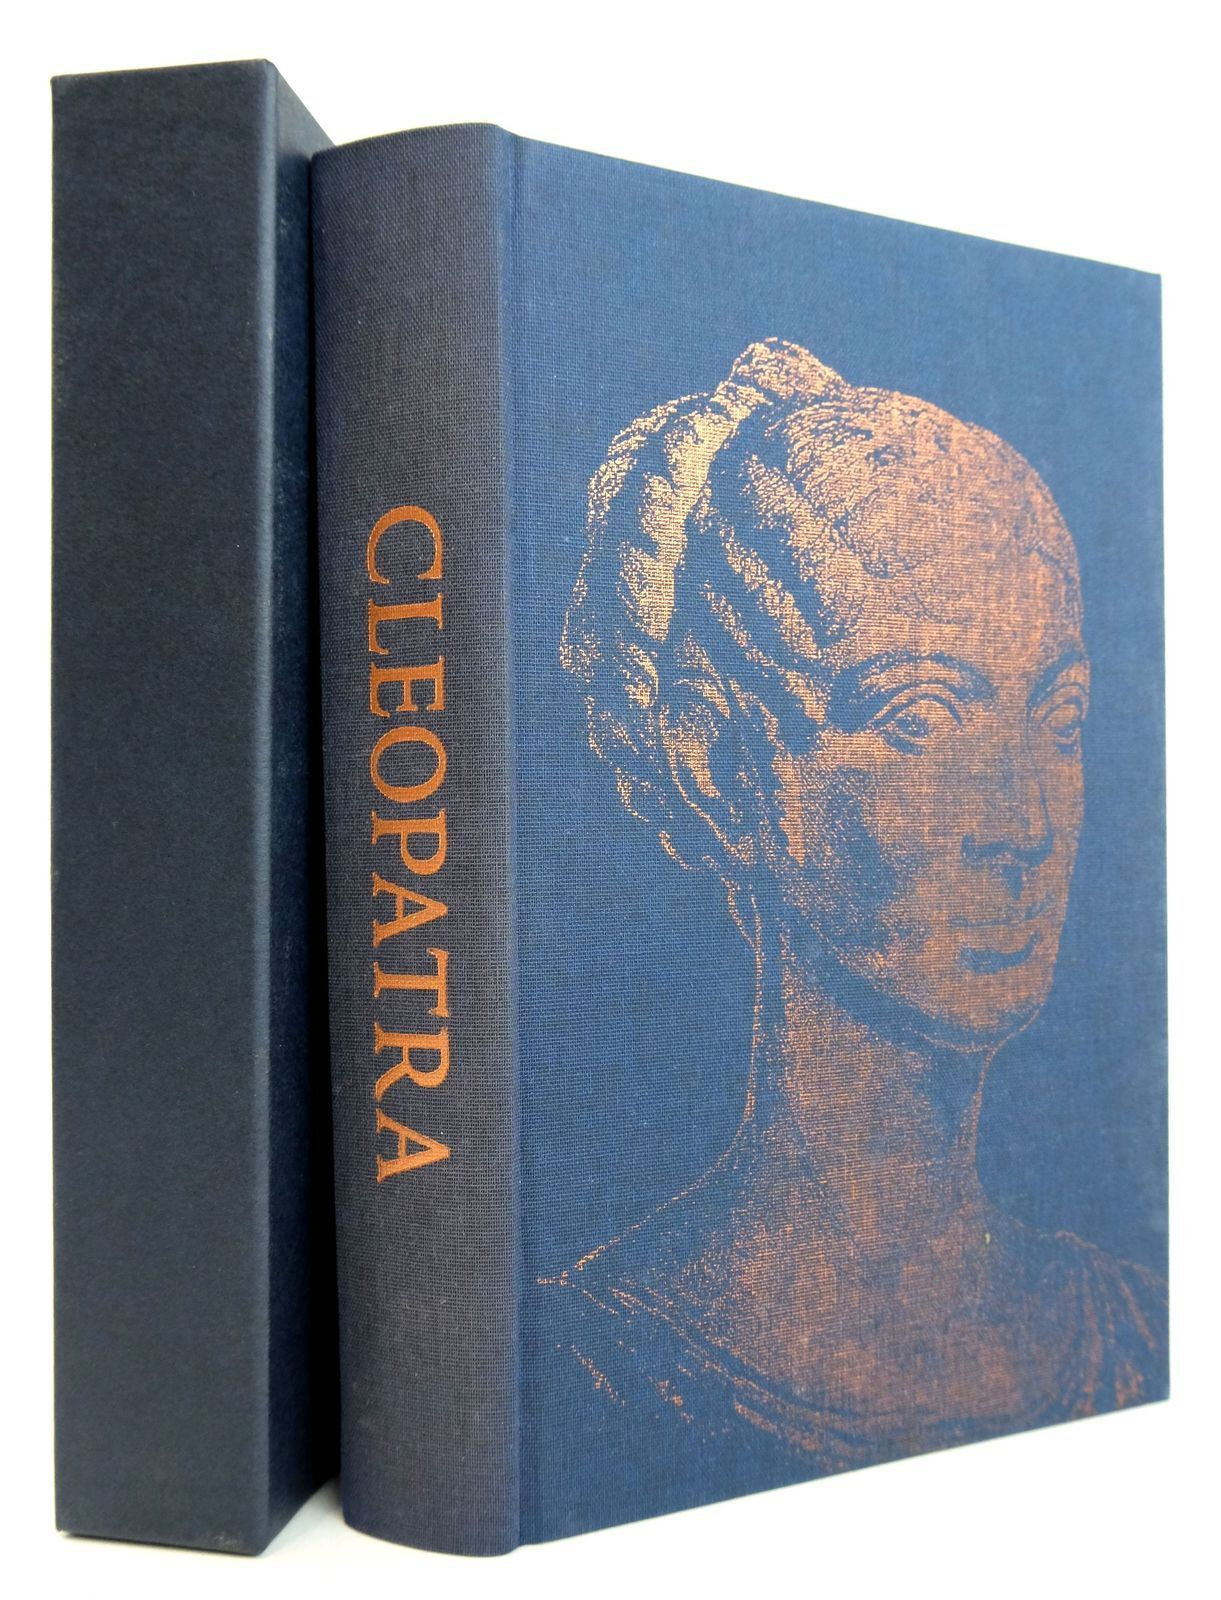 Photo of CLEOPATRA written by Lindsay, Jack published by Folio Society (STOCK CODE: 1819050)  for sale by Stella & Rose's Books